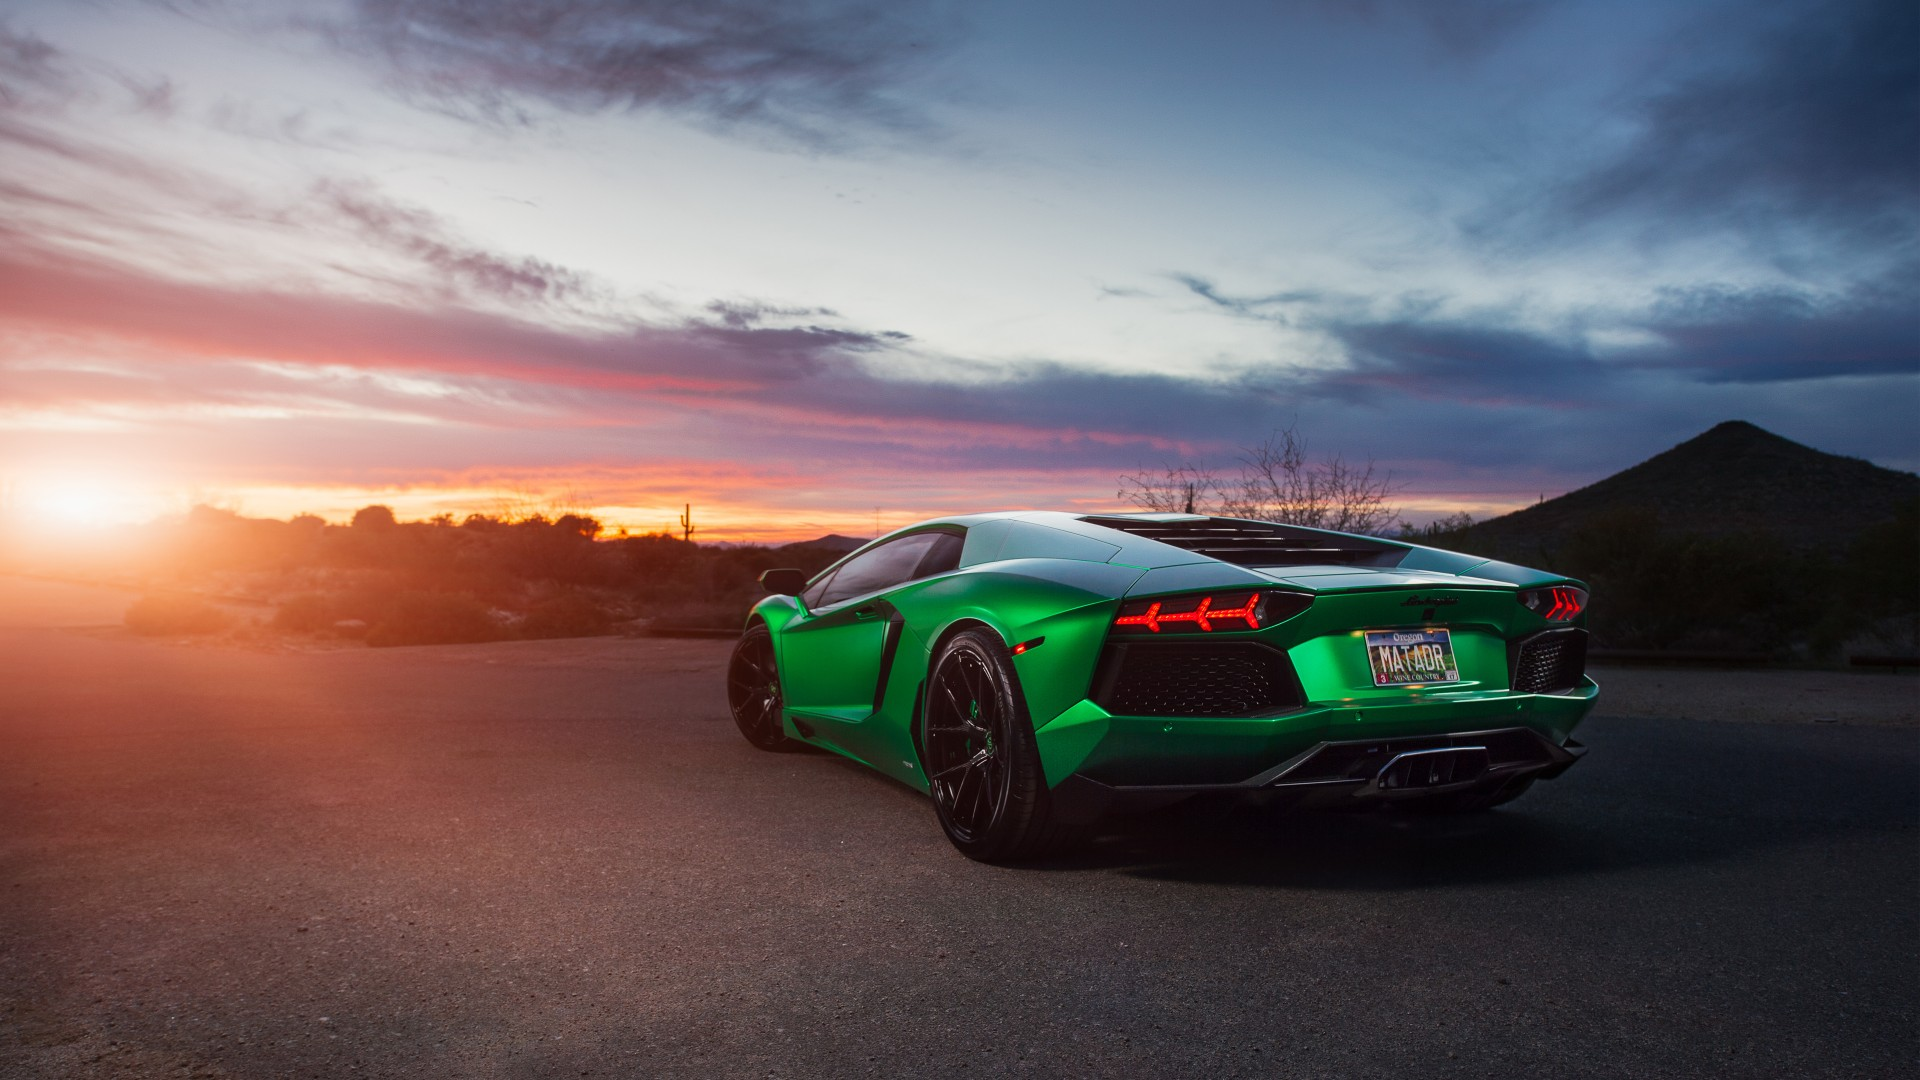 4k Wallpaper: Lamborghini Aventador Green 4K Wallpaper